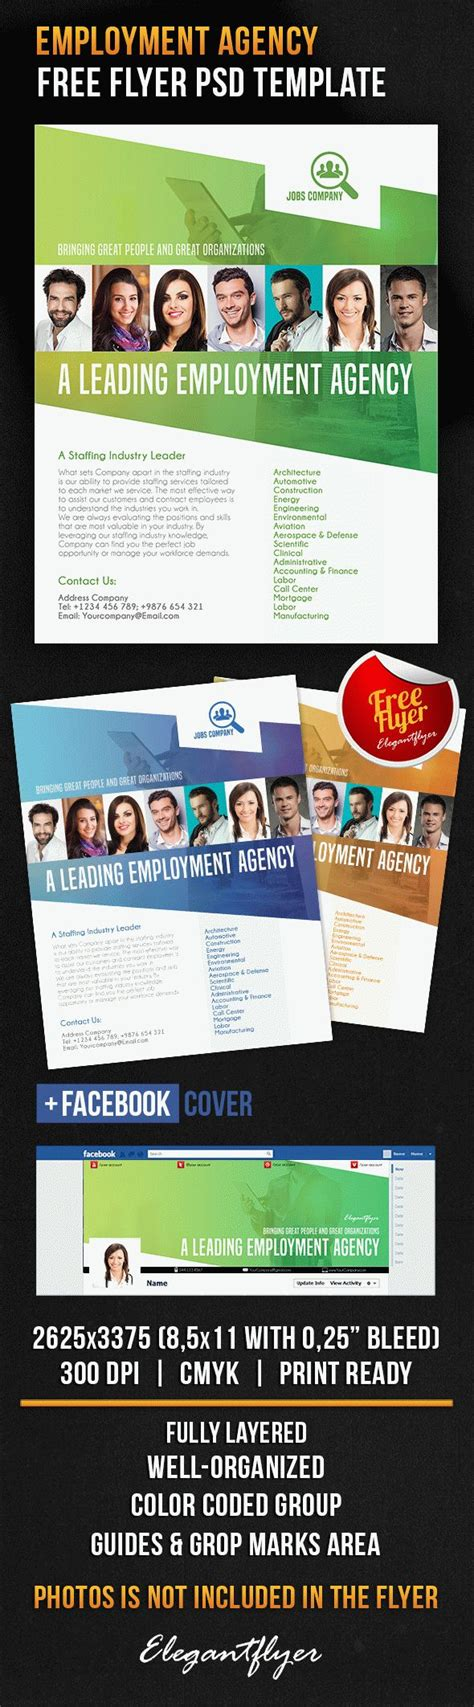 employment agency free flyer psd template facebook